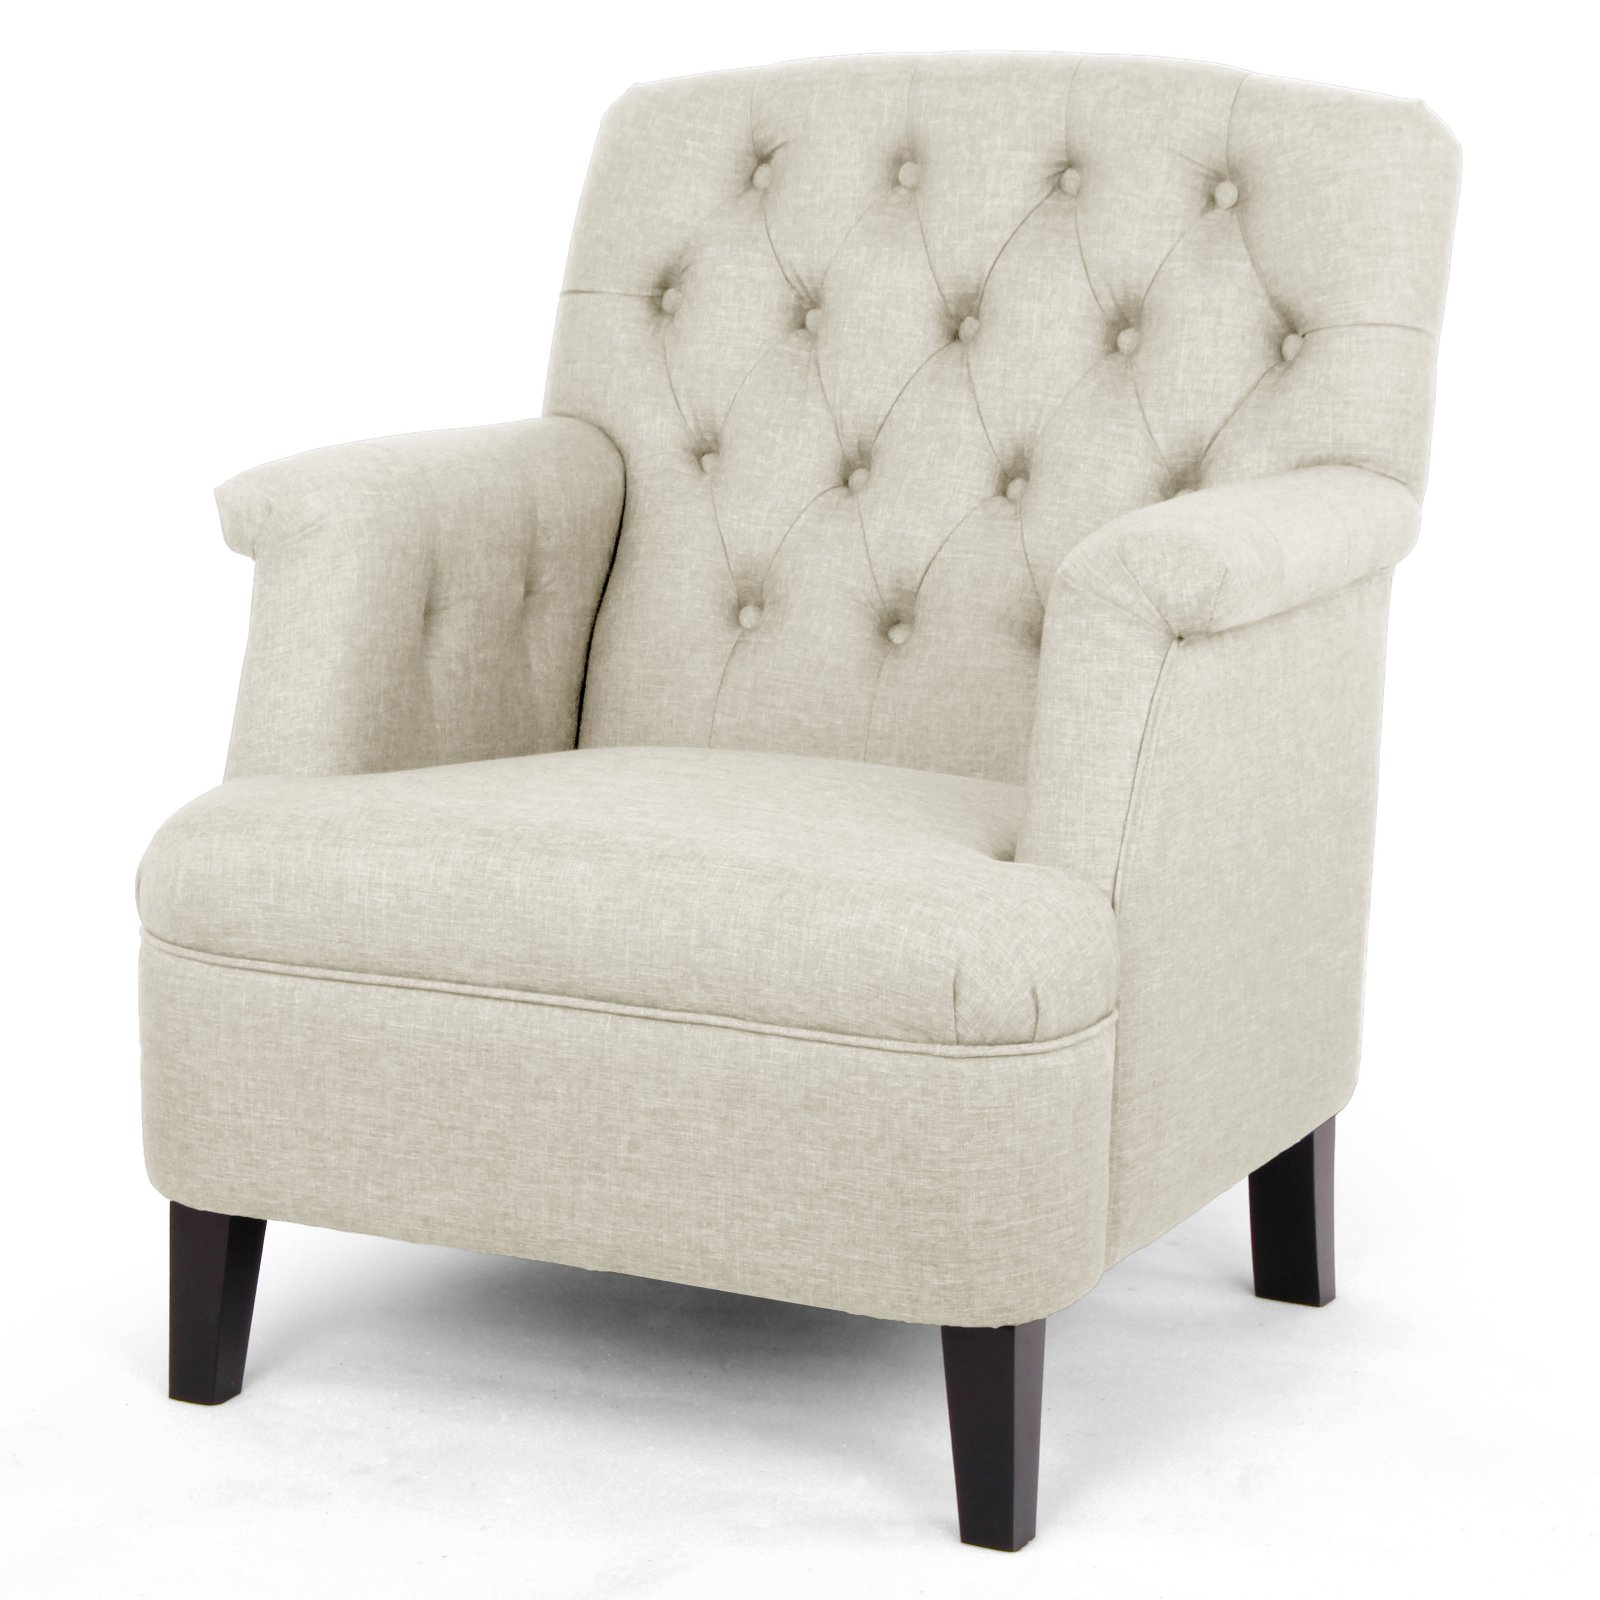 Baxton Studio Jester Classic Retro Modern Contemporary Beige Fabric Upholstered Button-Tufted Armchair by Wholesale Interiors